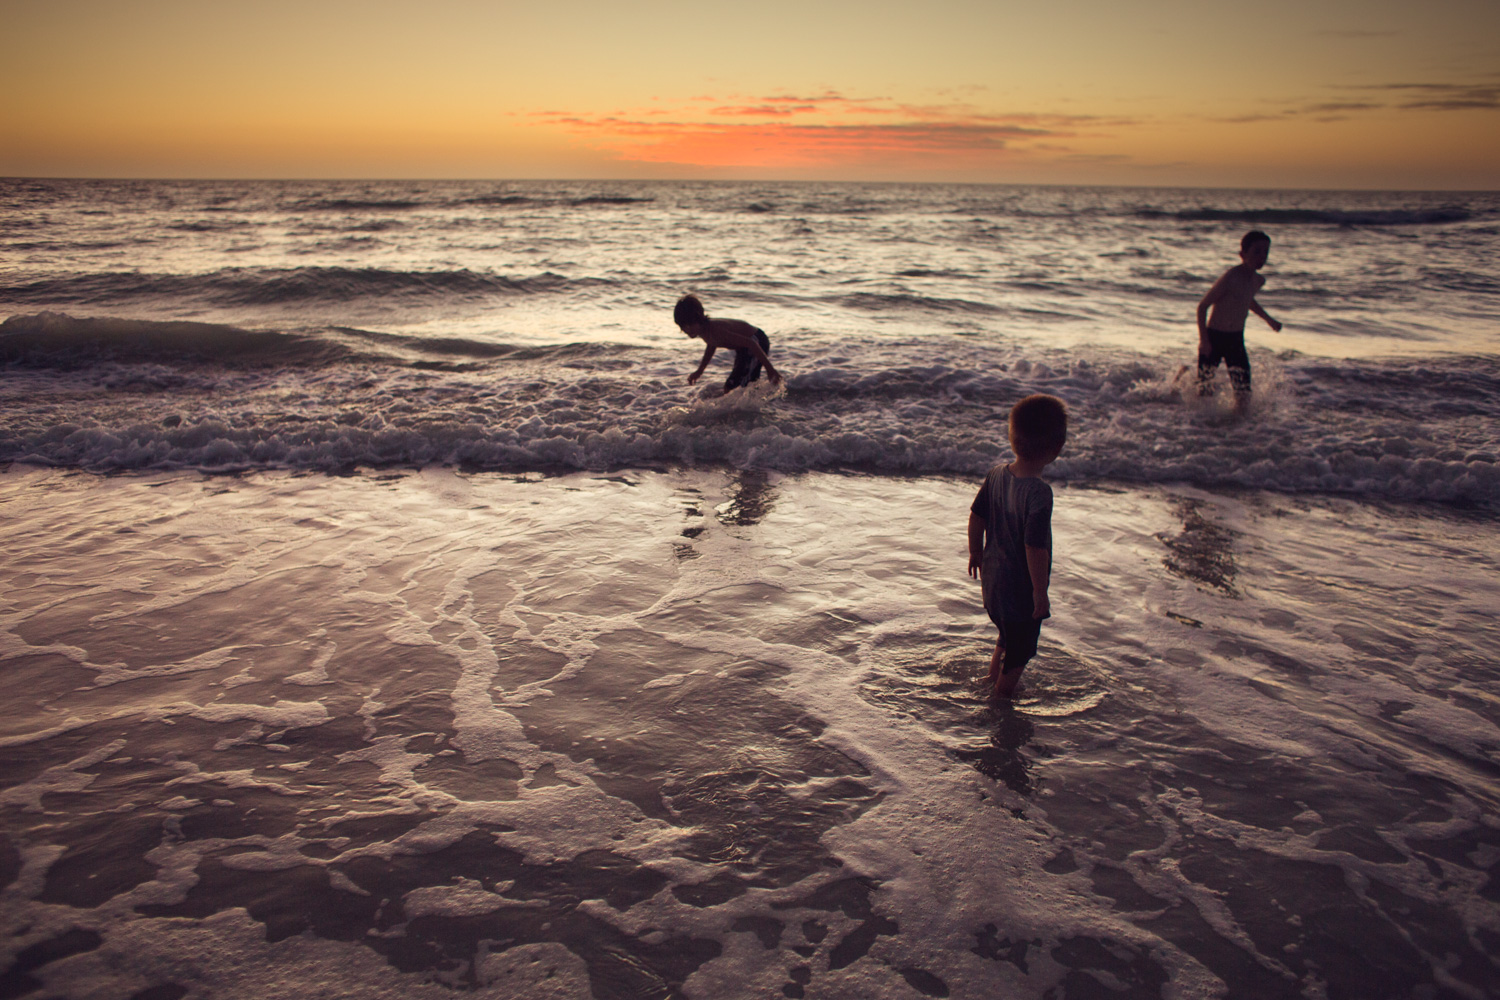 Sunset-Photograph-of-Children-Playing-in-the-Ocean